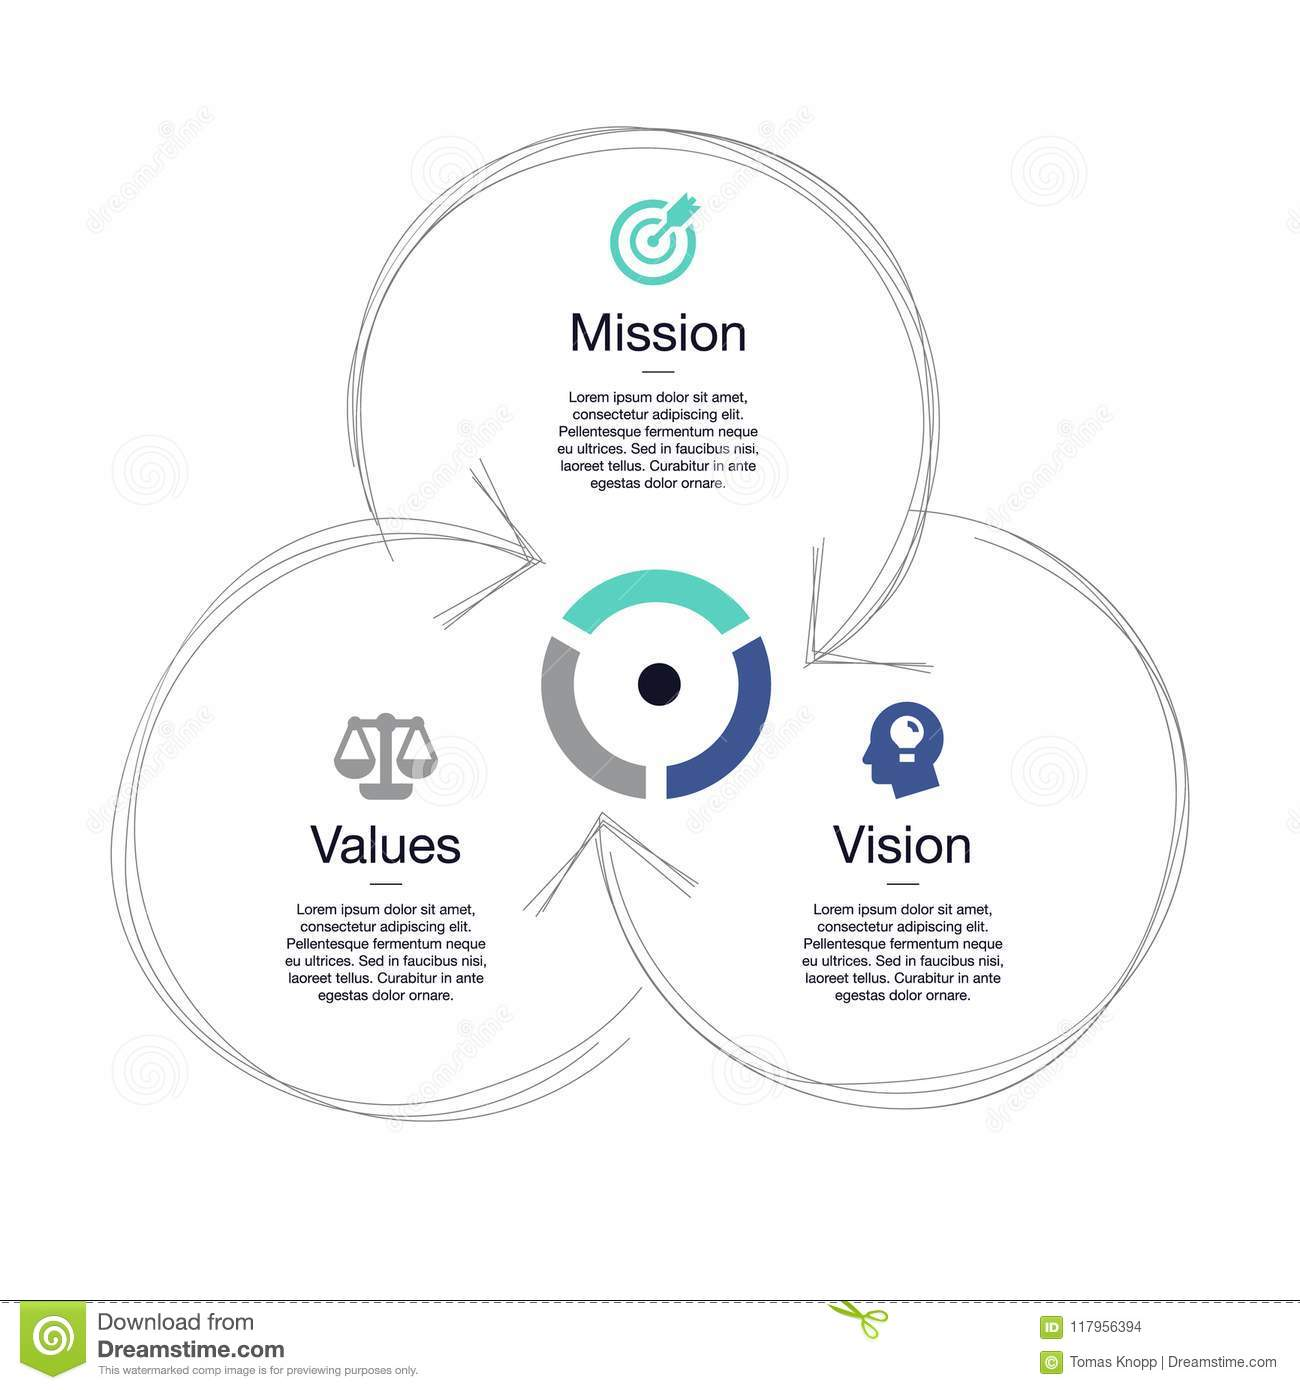 hight resolution of simple visualization for mission vision and values diagram schema isolated on light background easy to use for your website or presentation